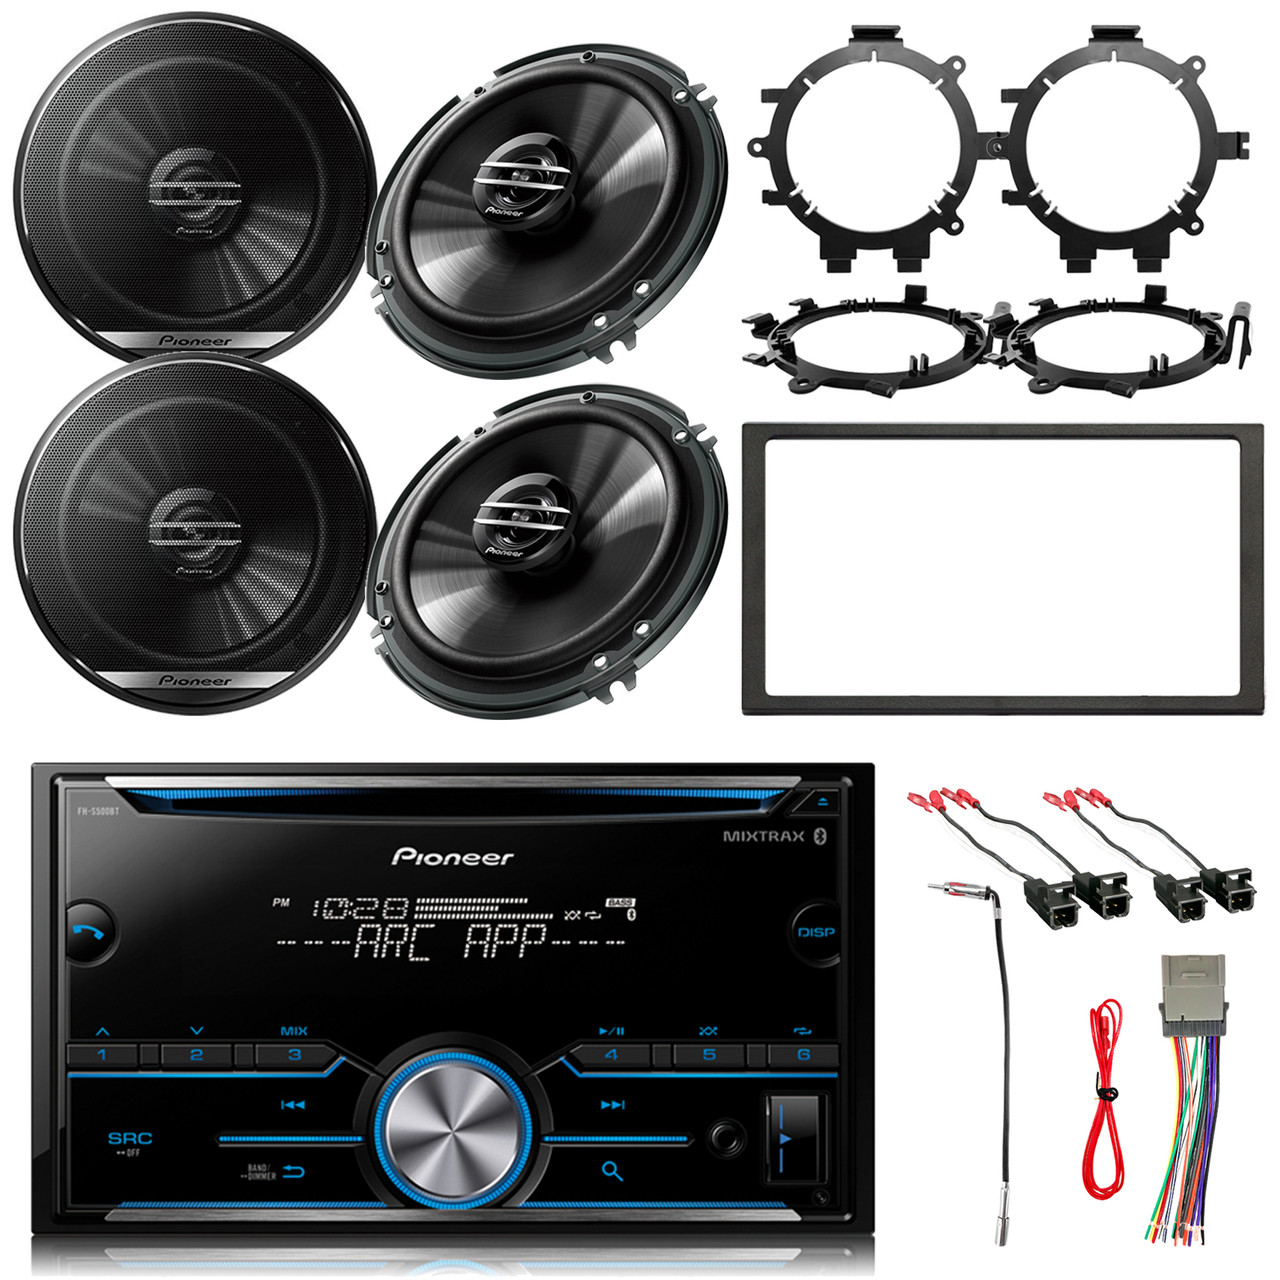 medium resolution of pioneer double din bluetooth mixtrax cd receiver 4x 6 5 speakers enrock dash kit stereo wiring harness antenna adapter 4x speaker wire harness